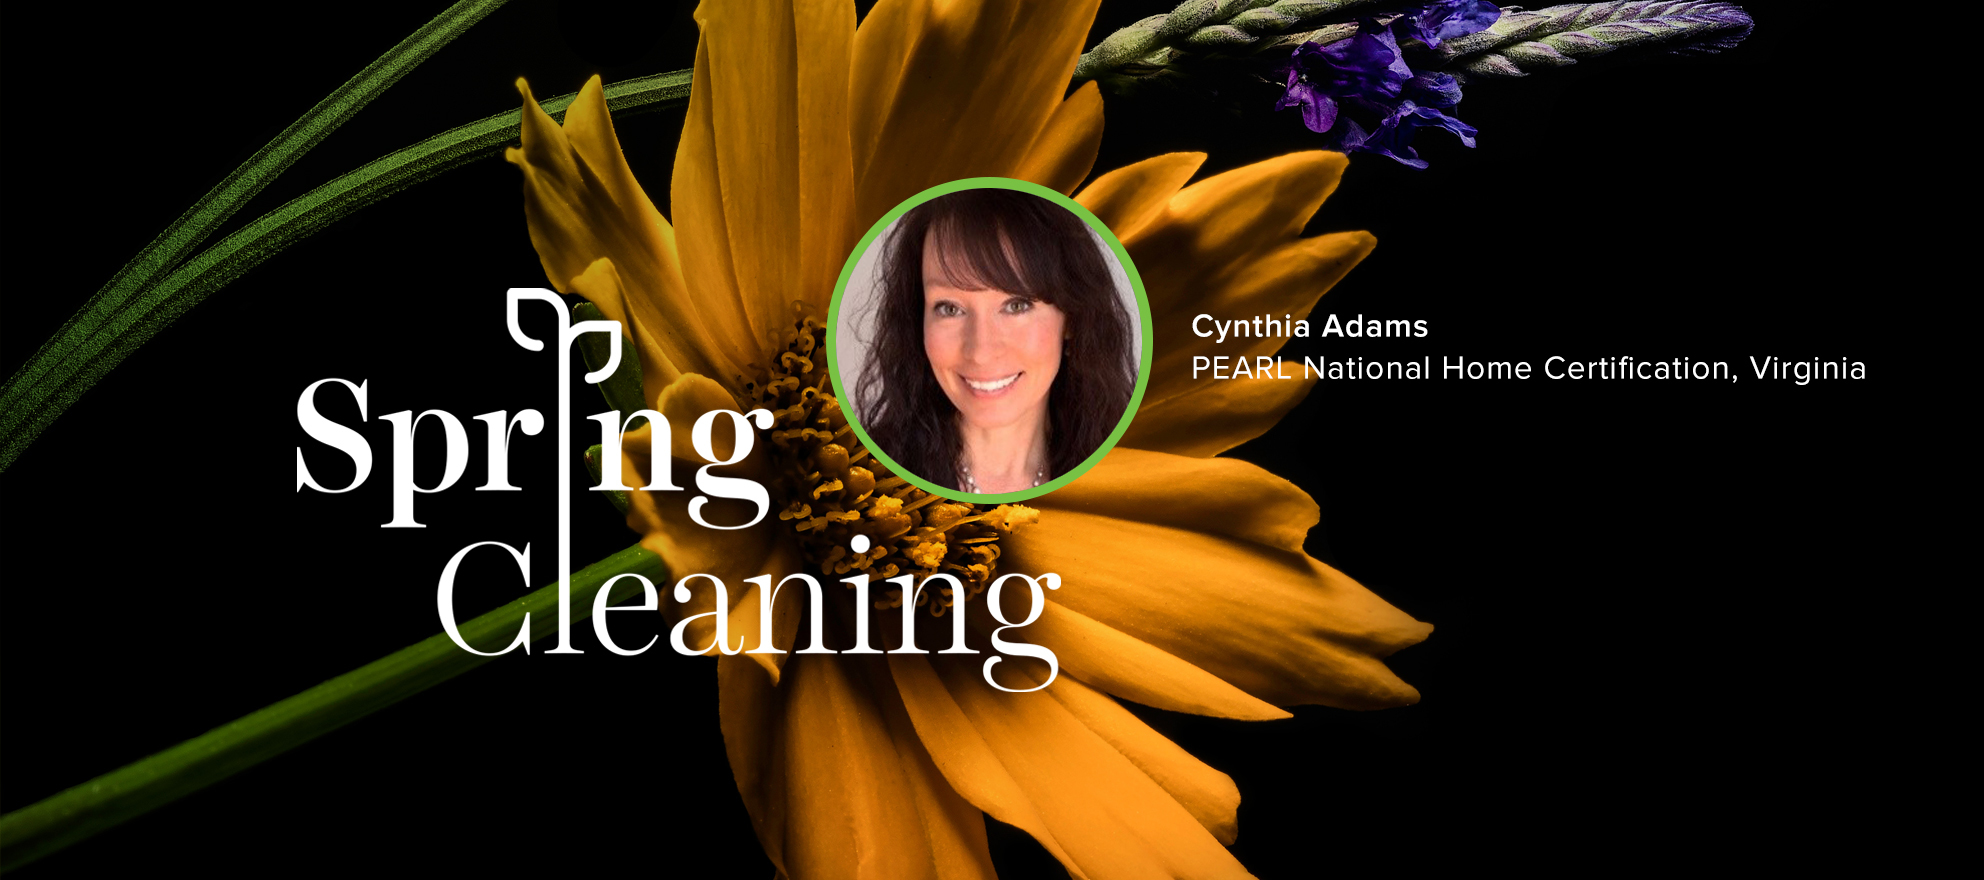 cynthia adams, pearl partners, spring cleaning, spring forward